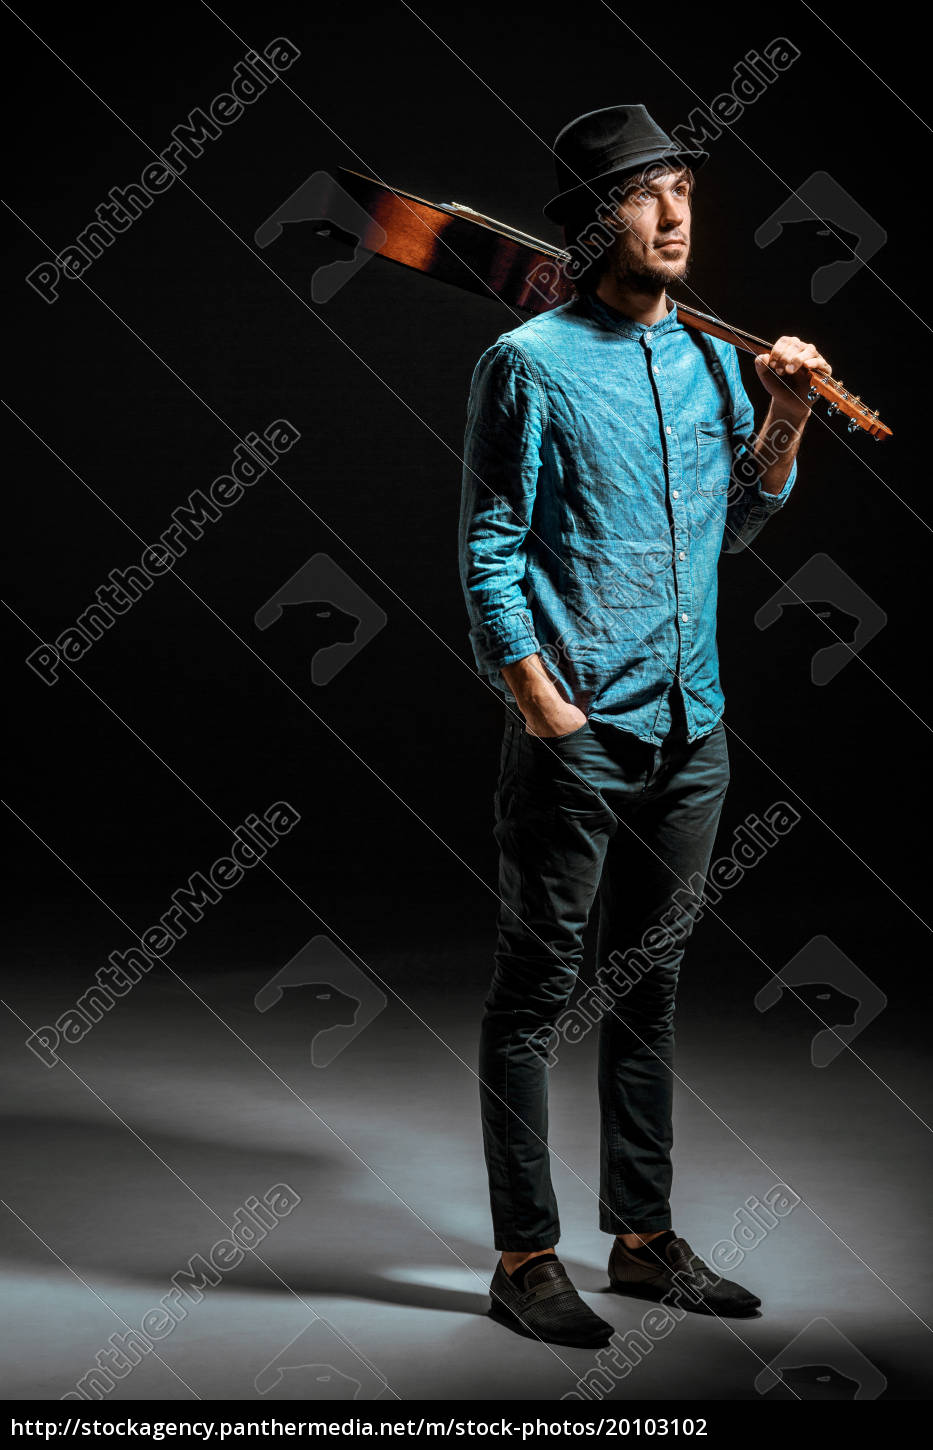 cool, guy, standing, with, guitar, on - 20103102